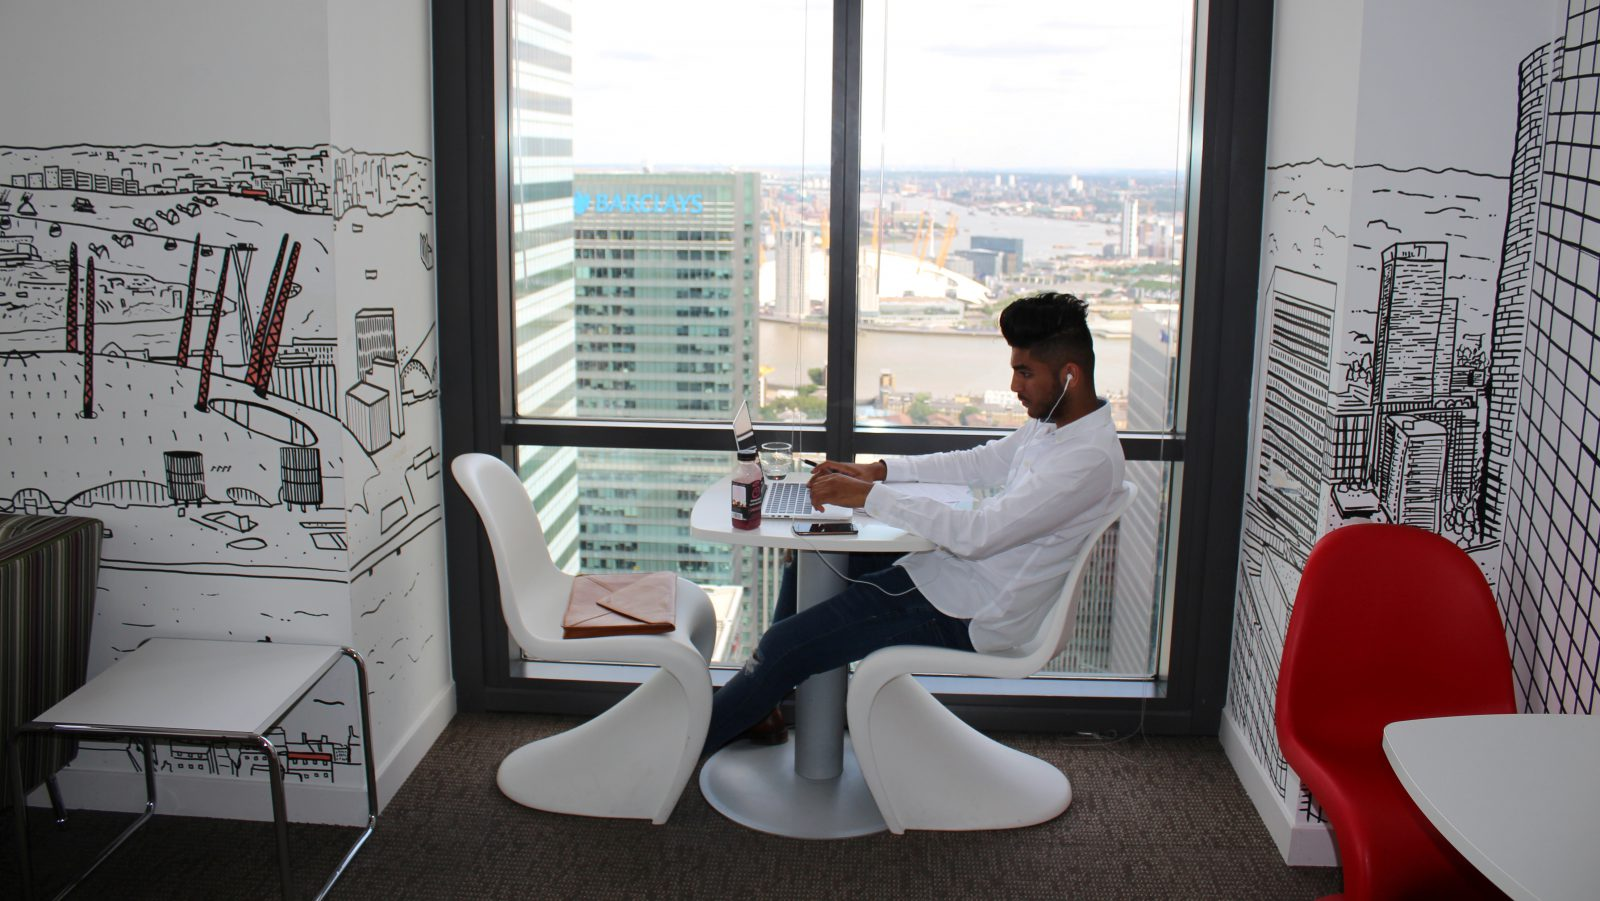 A man uses a laptop in the Level39 FinTech hub based in the One Canada Square tower of the Canary Wharf district of London, Britain, August 5, 2016. Picture taken August 5, 2016. REUTERS/Jemima Kelly - RTSLRCT